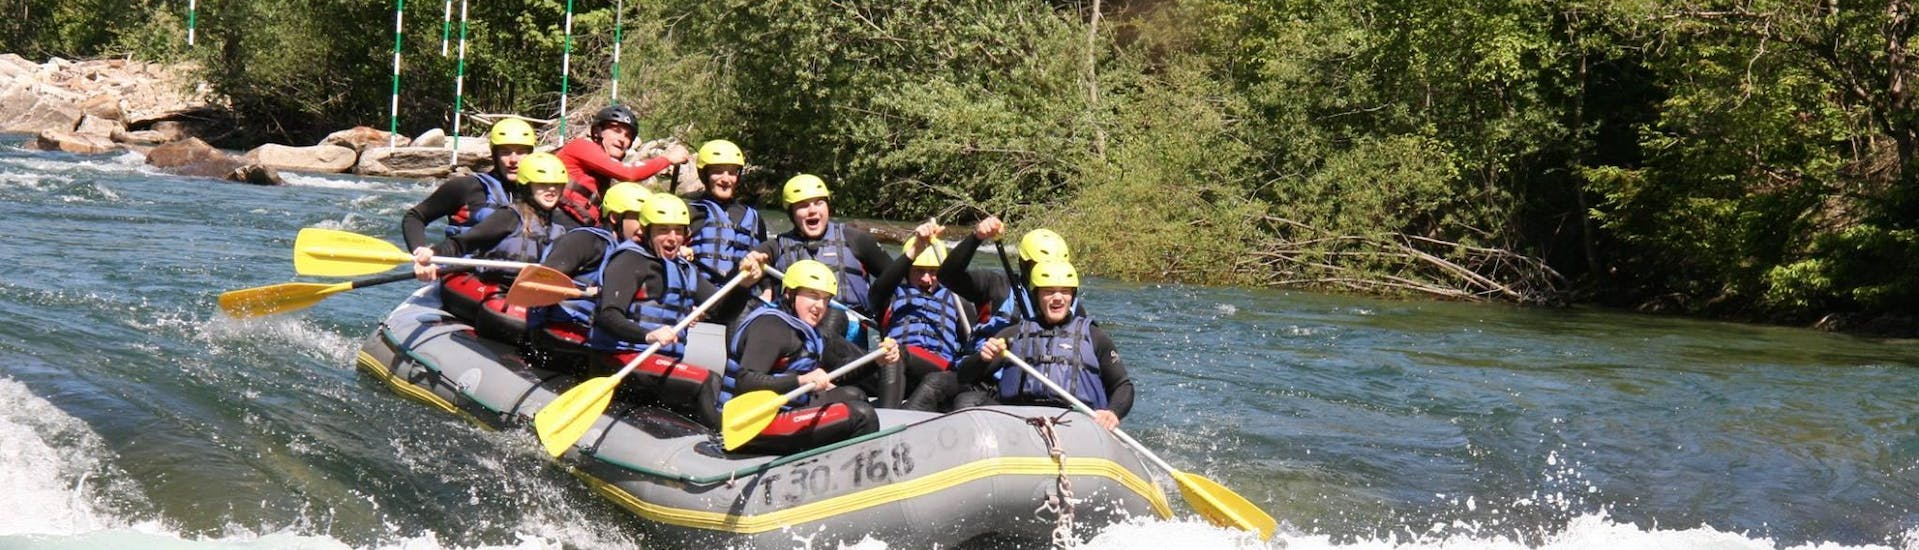 Rafting on the Möll River for Adventurers - Fun Tour